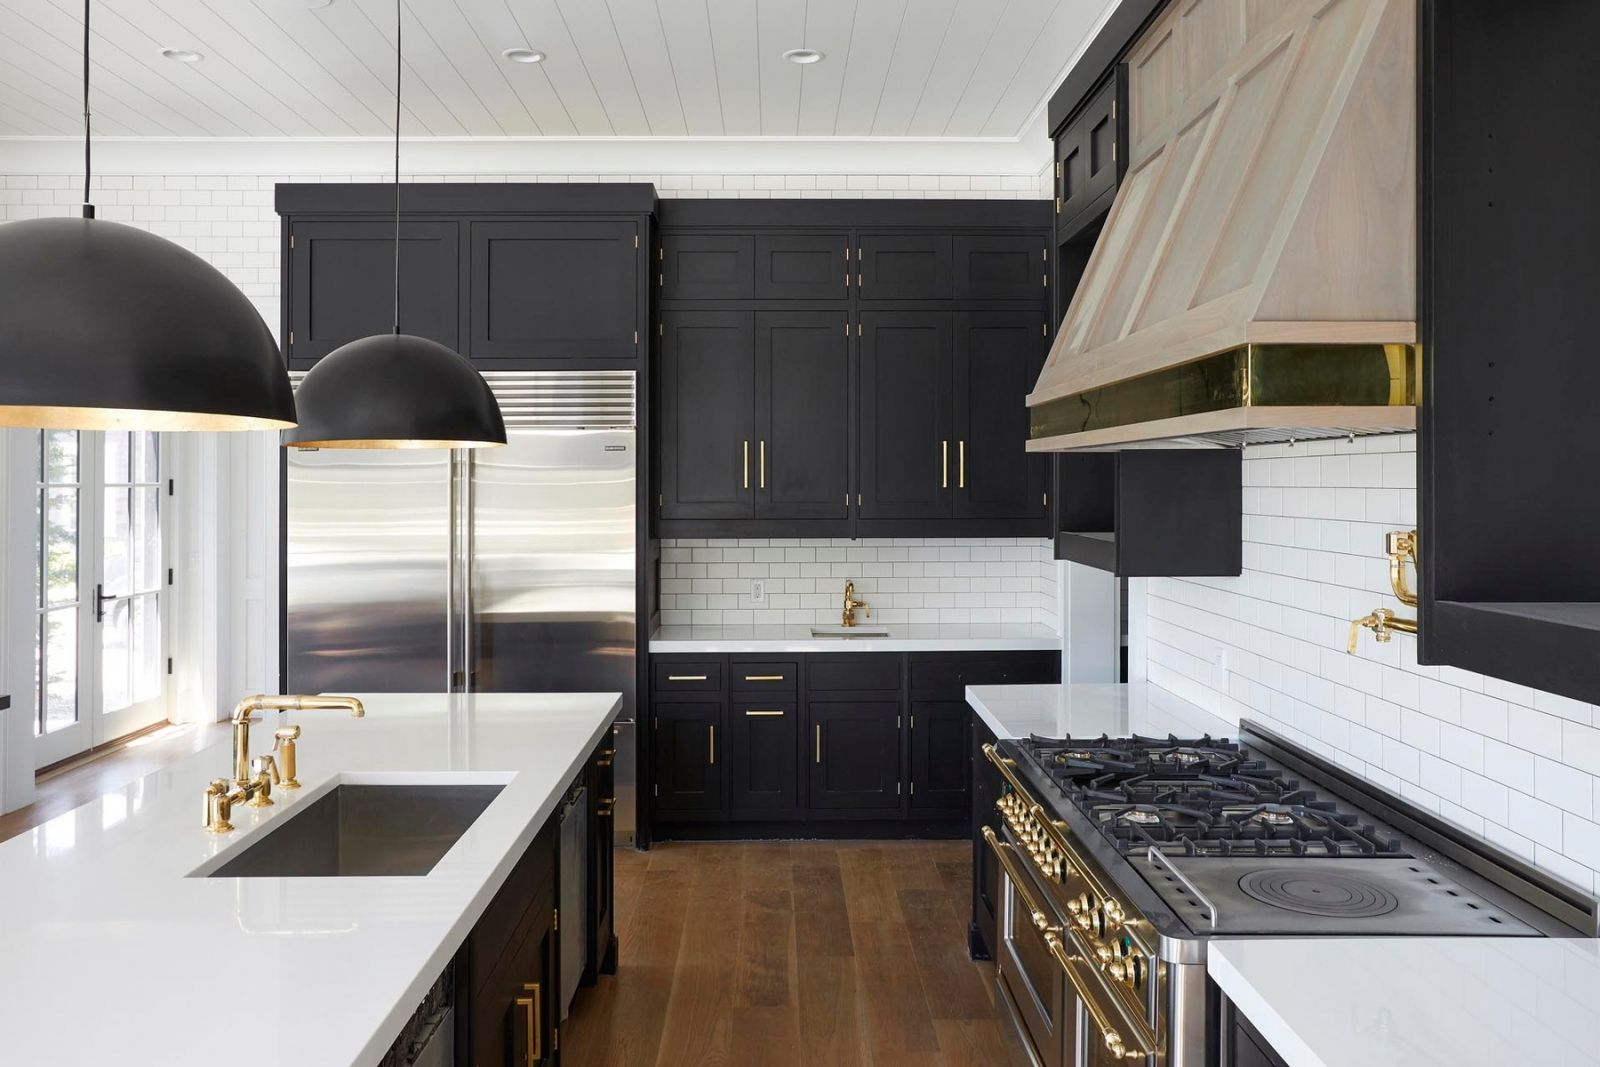 R.W. Atlas | Pinterest | Kitchen faucets, Wall mount and Faucet